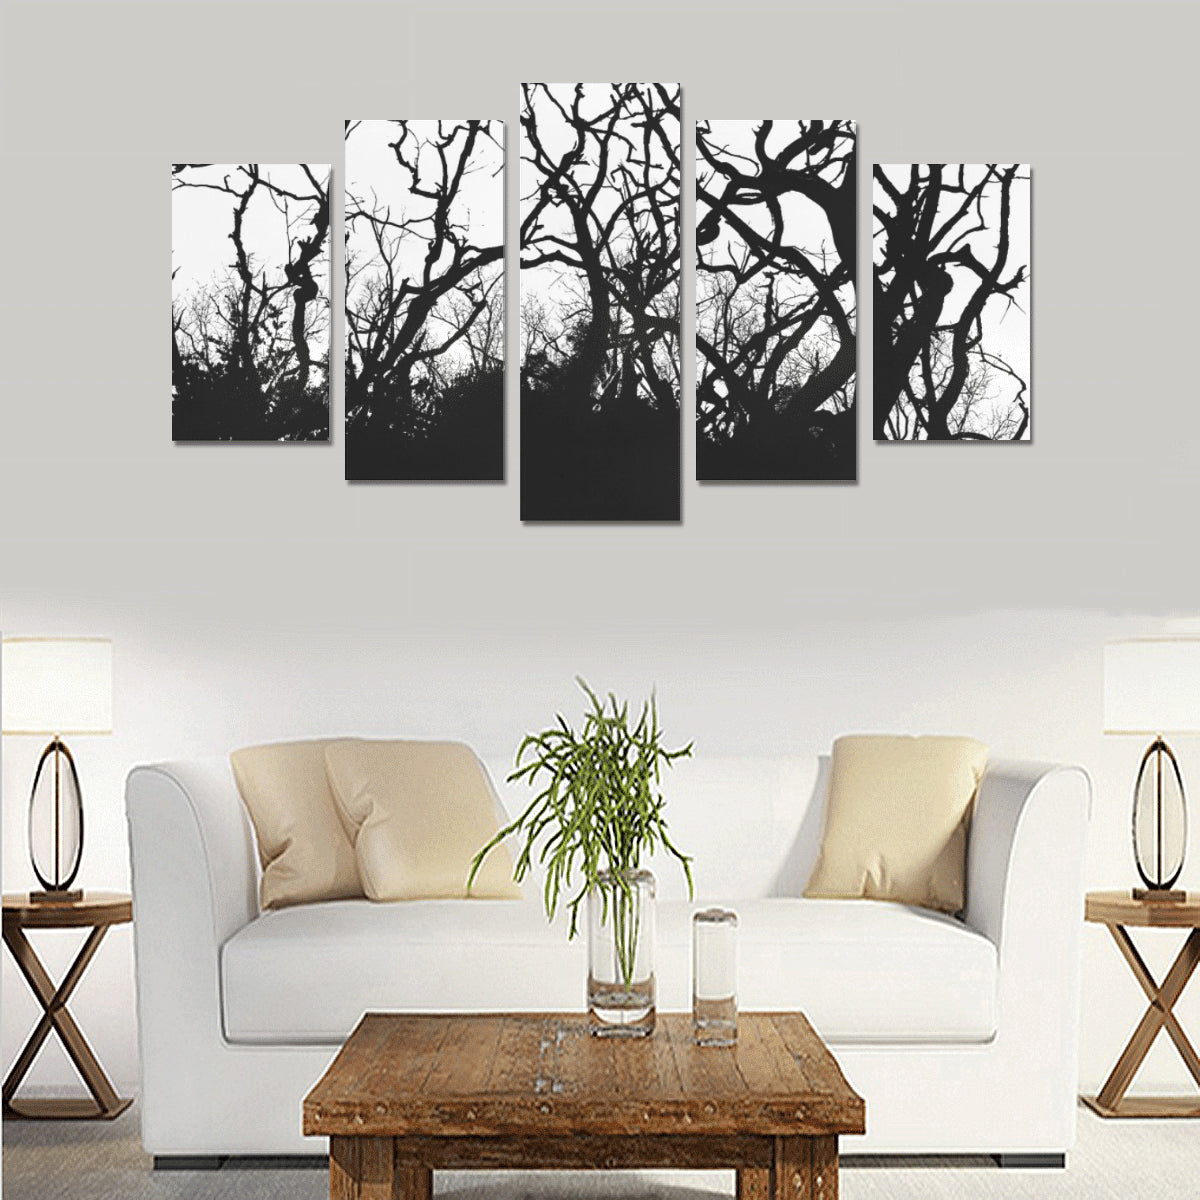 Dead Tree Black Roots Canvas Print Sets - Size A